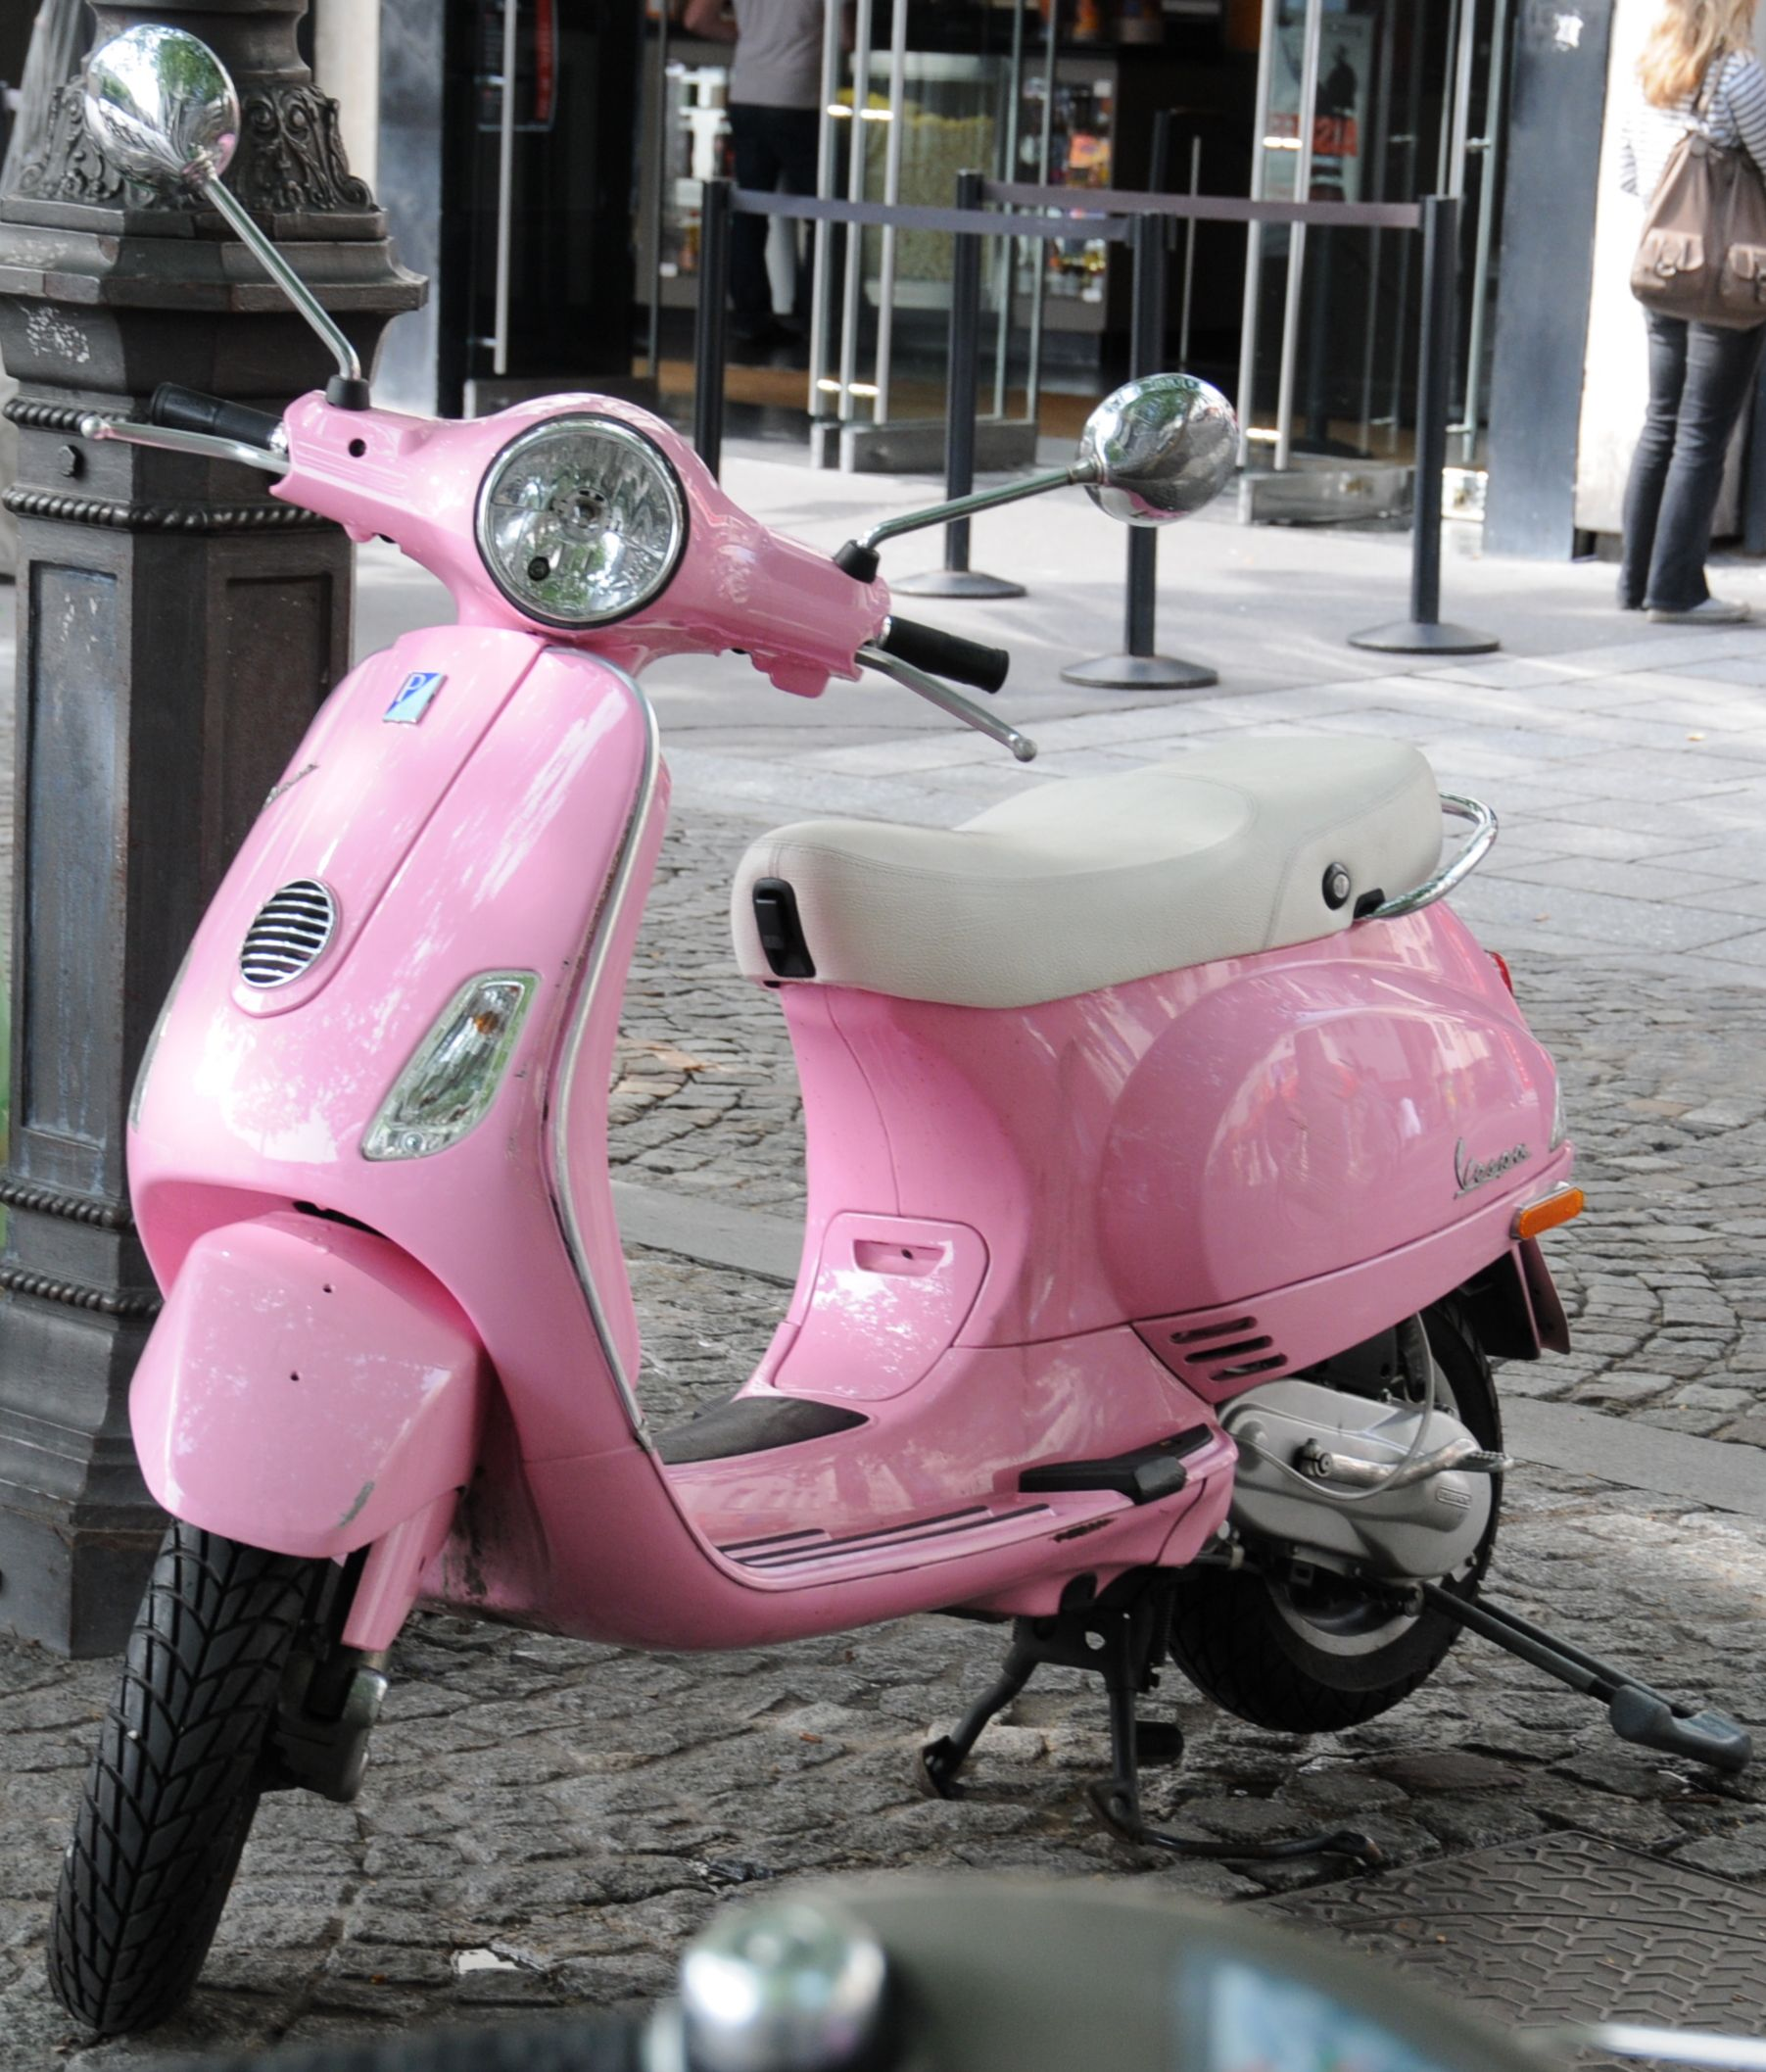 Scooter Glamping Camping & Beach Pink Vespa Color